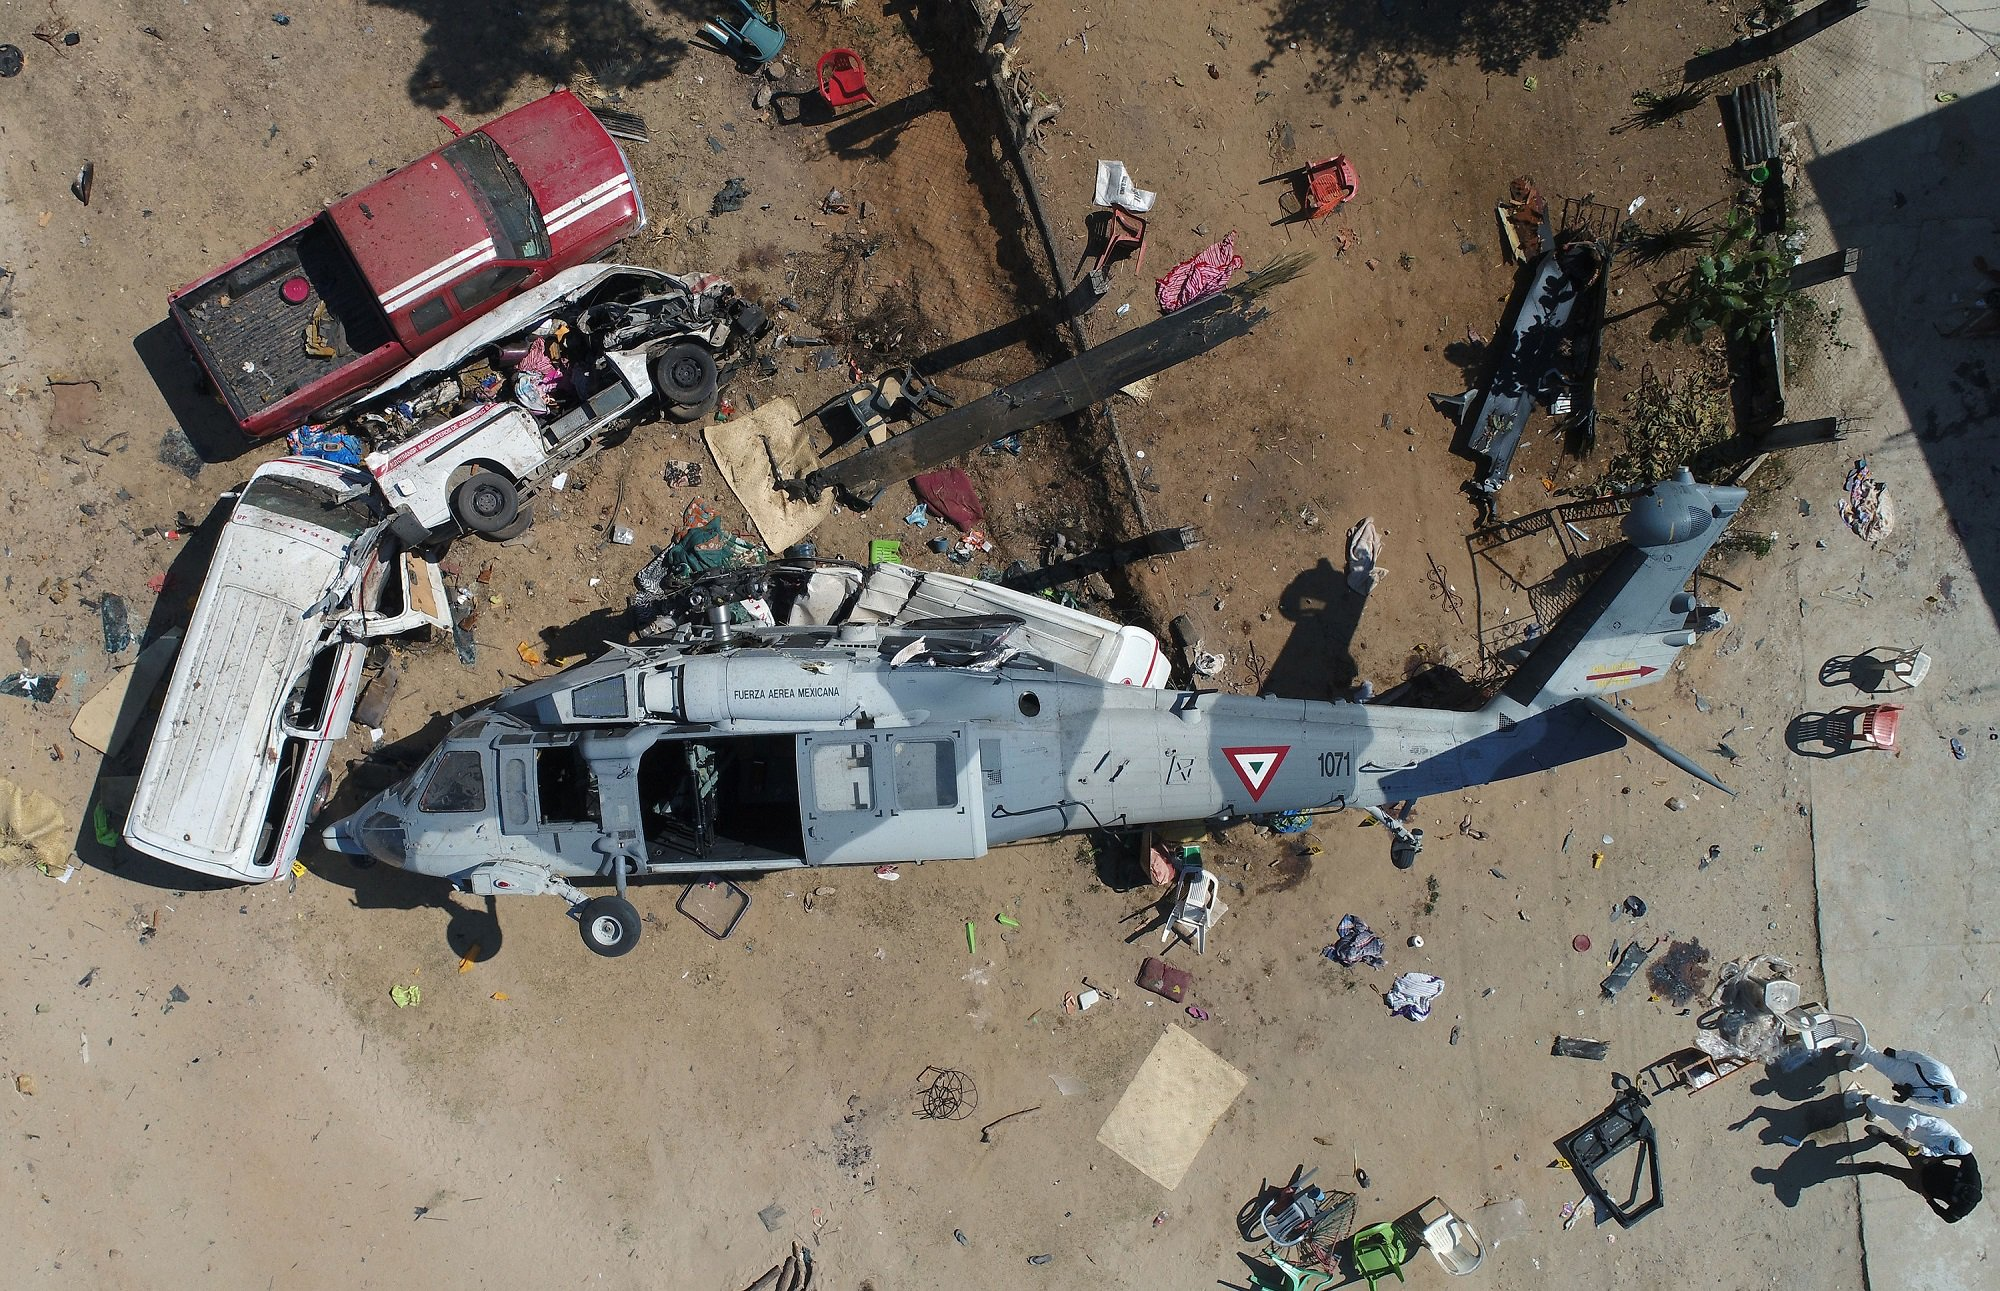 Aerial view of the military helicopter that fell on a van in Santiago Jamiltepec, Oaxaca state, Mexico, on February 17, 2018.  A 7.2-magnitude earthquake rattled Mexico on Friday, causing little damage but triggering a tragedy when a minister